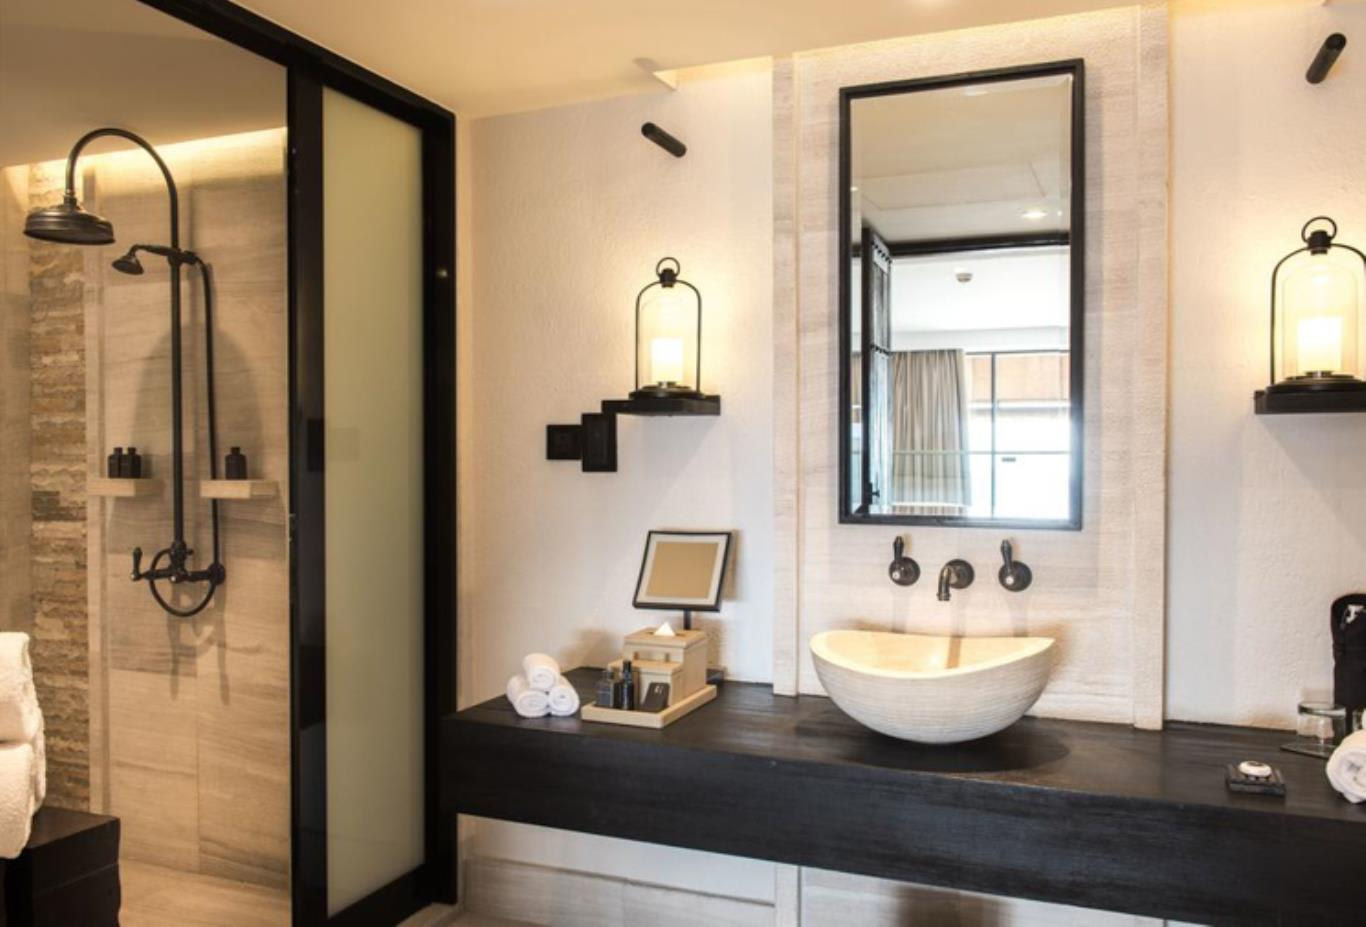 Loft Suite bathroom